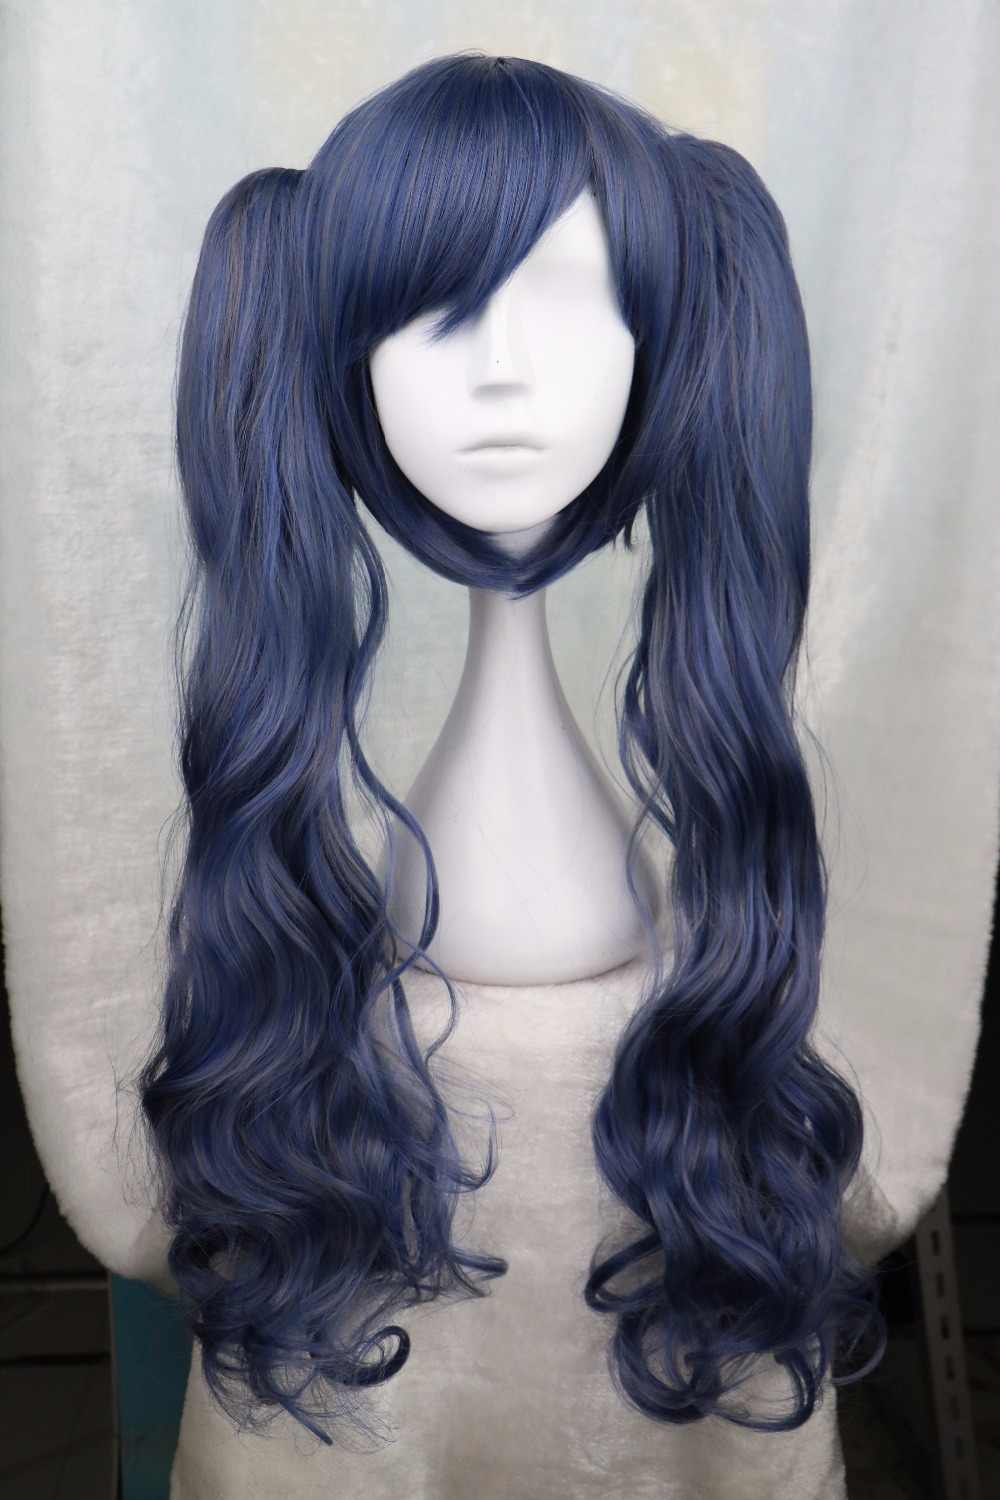 Black Butler Kuroshitsuji Ciel Phantomhive Cross-dressing Girl Drak Blue Cosplay Wig